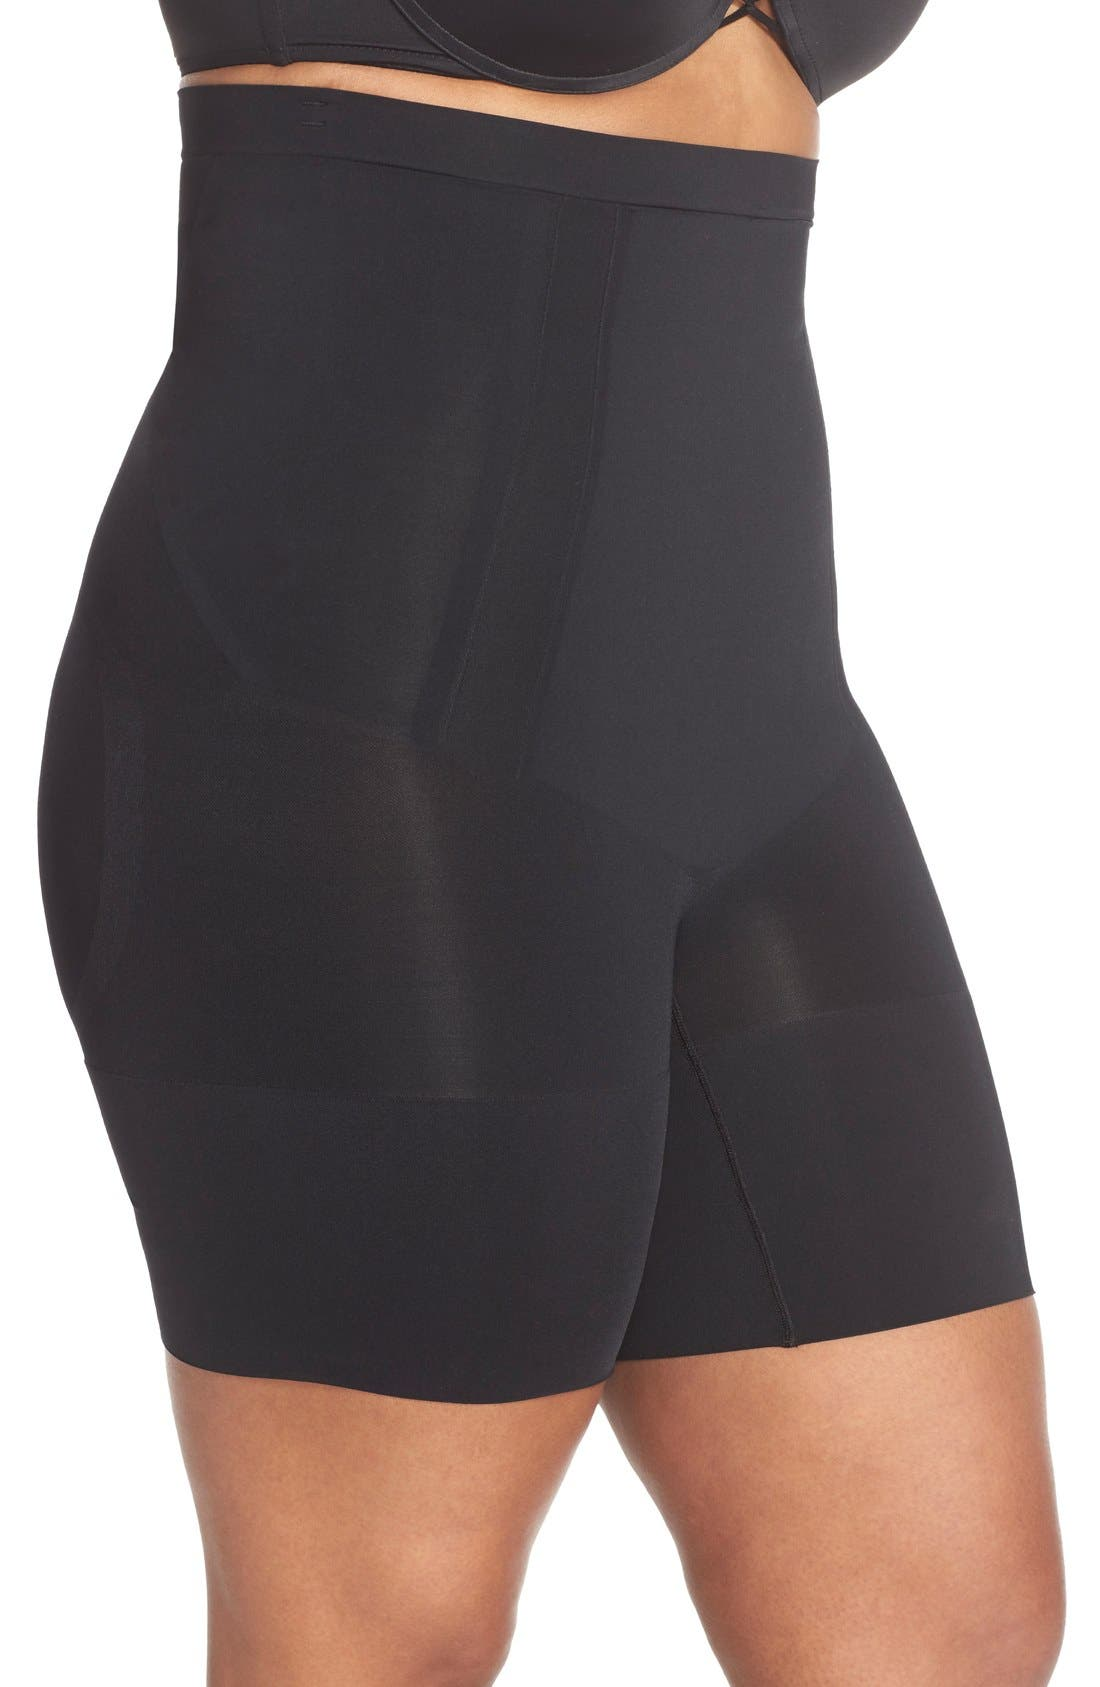 Alternate Image 3  - SPANX® OnCore High Waist Mid-Thigh Shorts (Plus Size)